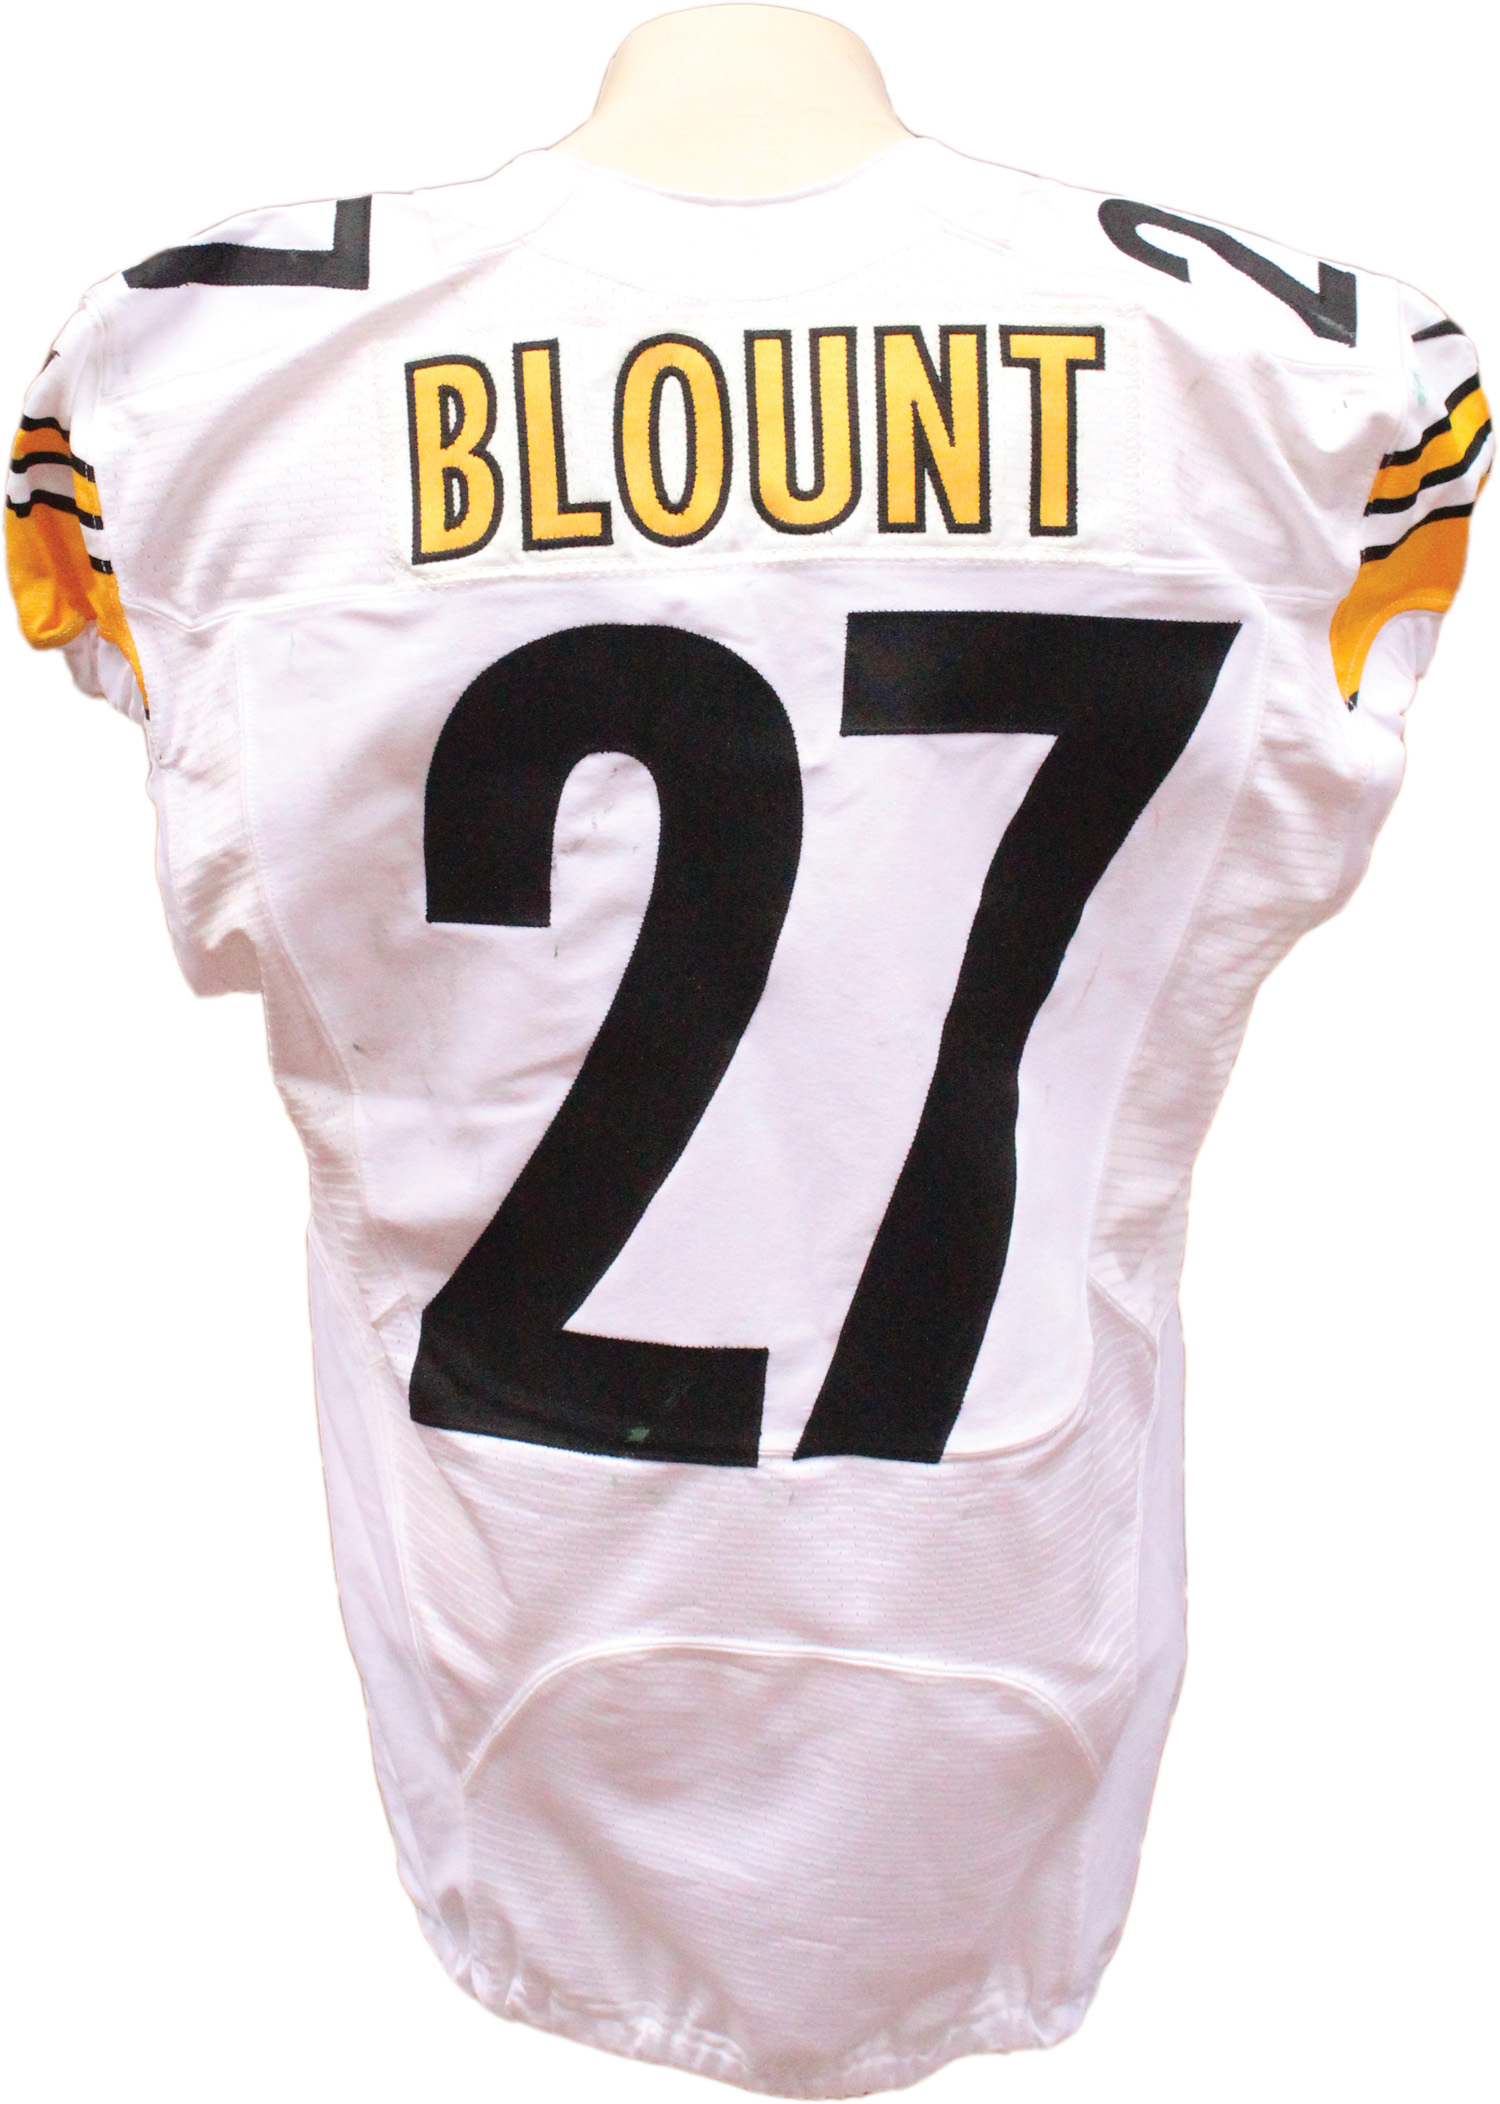 500ef7ee0 ... 2014 LeGarrette Blount Game Used Pittsburgh Steelers Jersey .